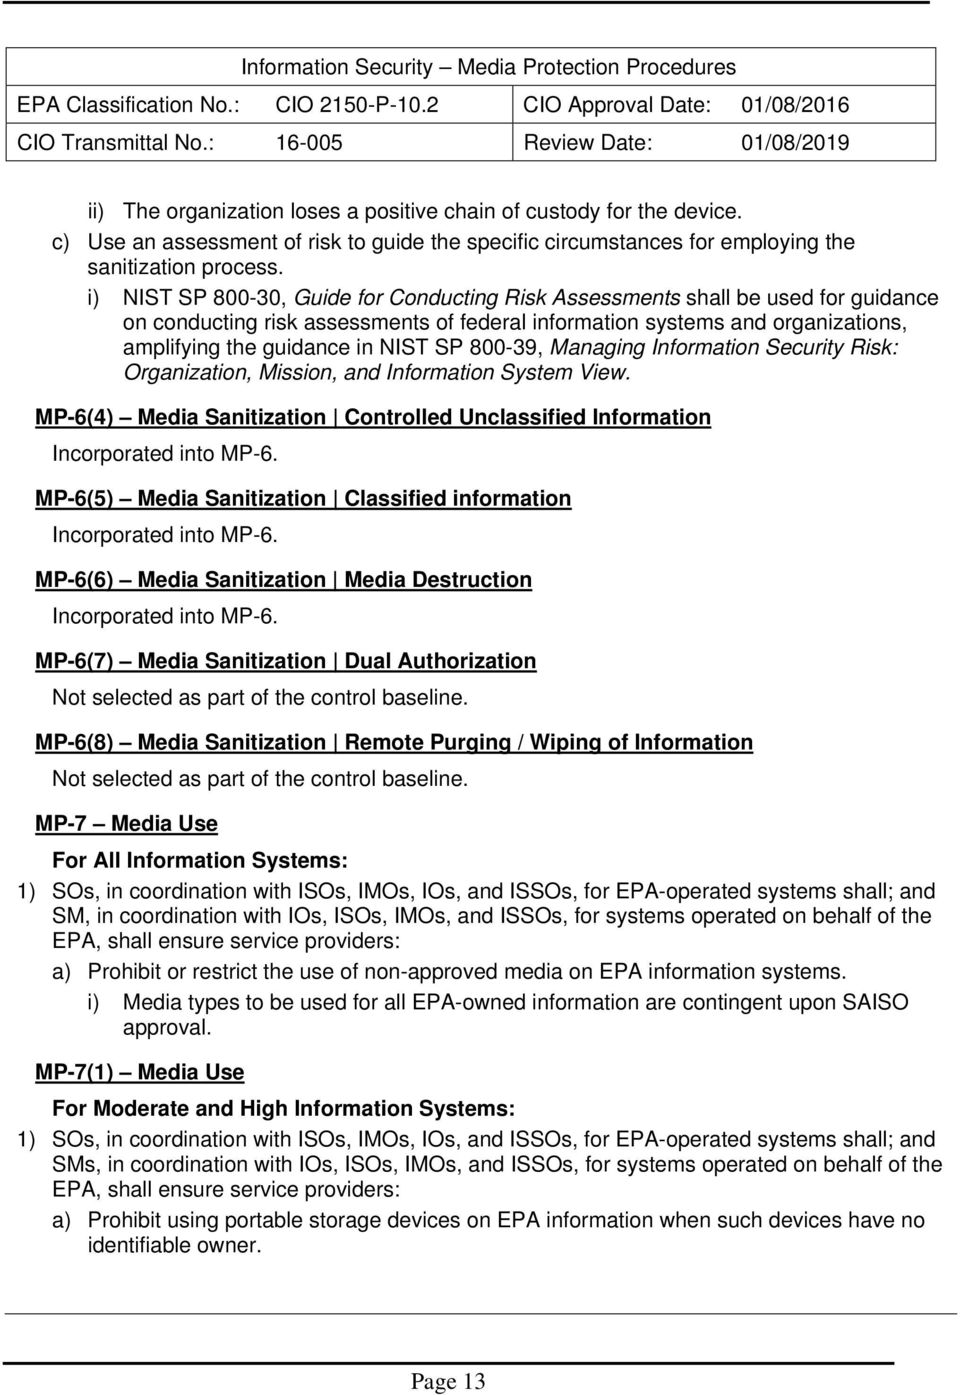 800-39, Managing Information Security Risk: Organization, Mission, and Information System View. MP-6(4) Media Sanitization Controlled Unclassified Information Incorporated into MP-6.